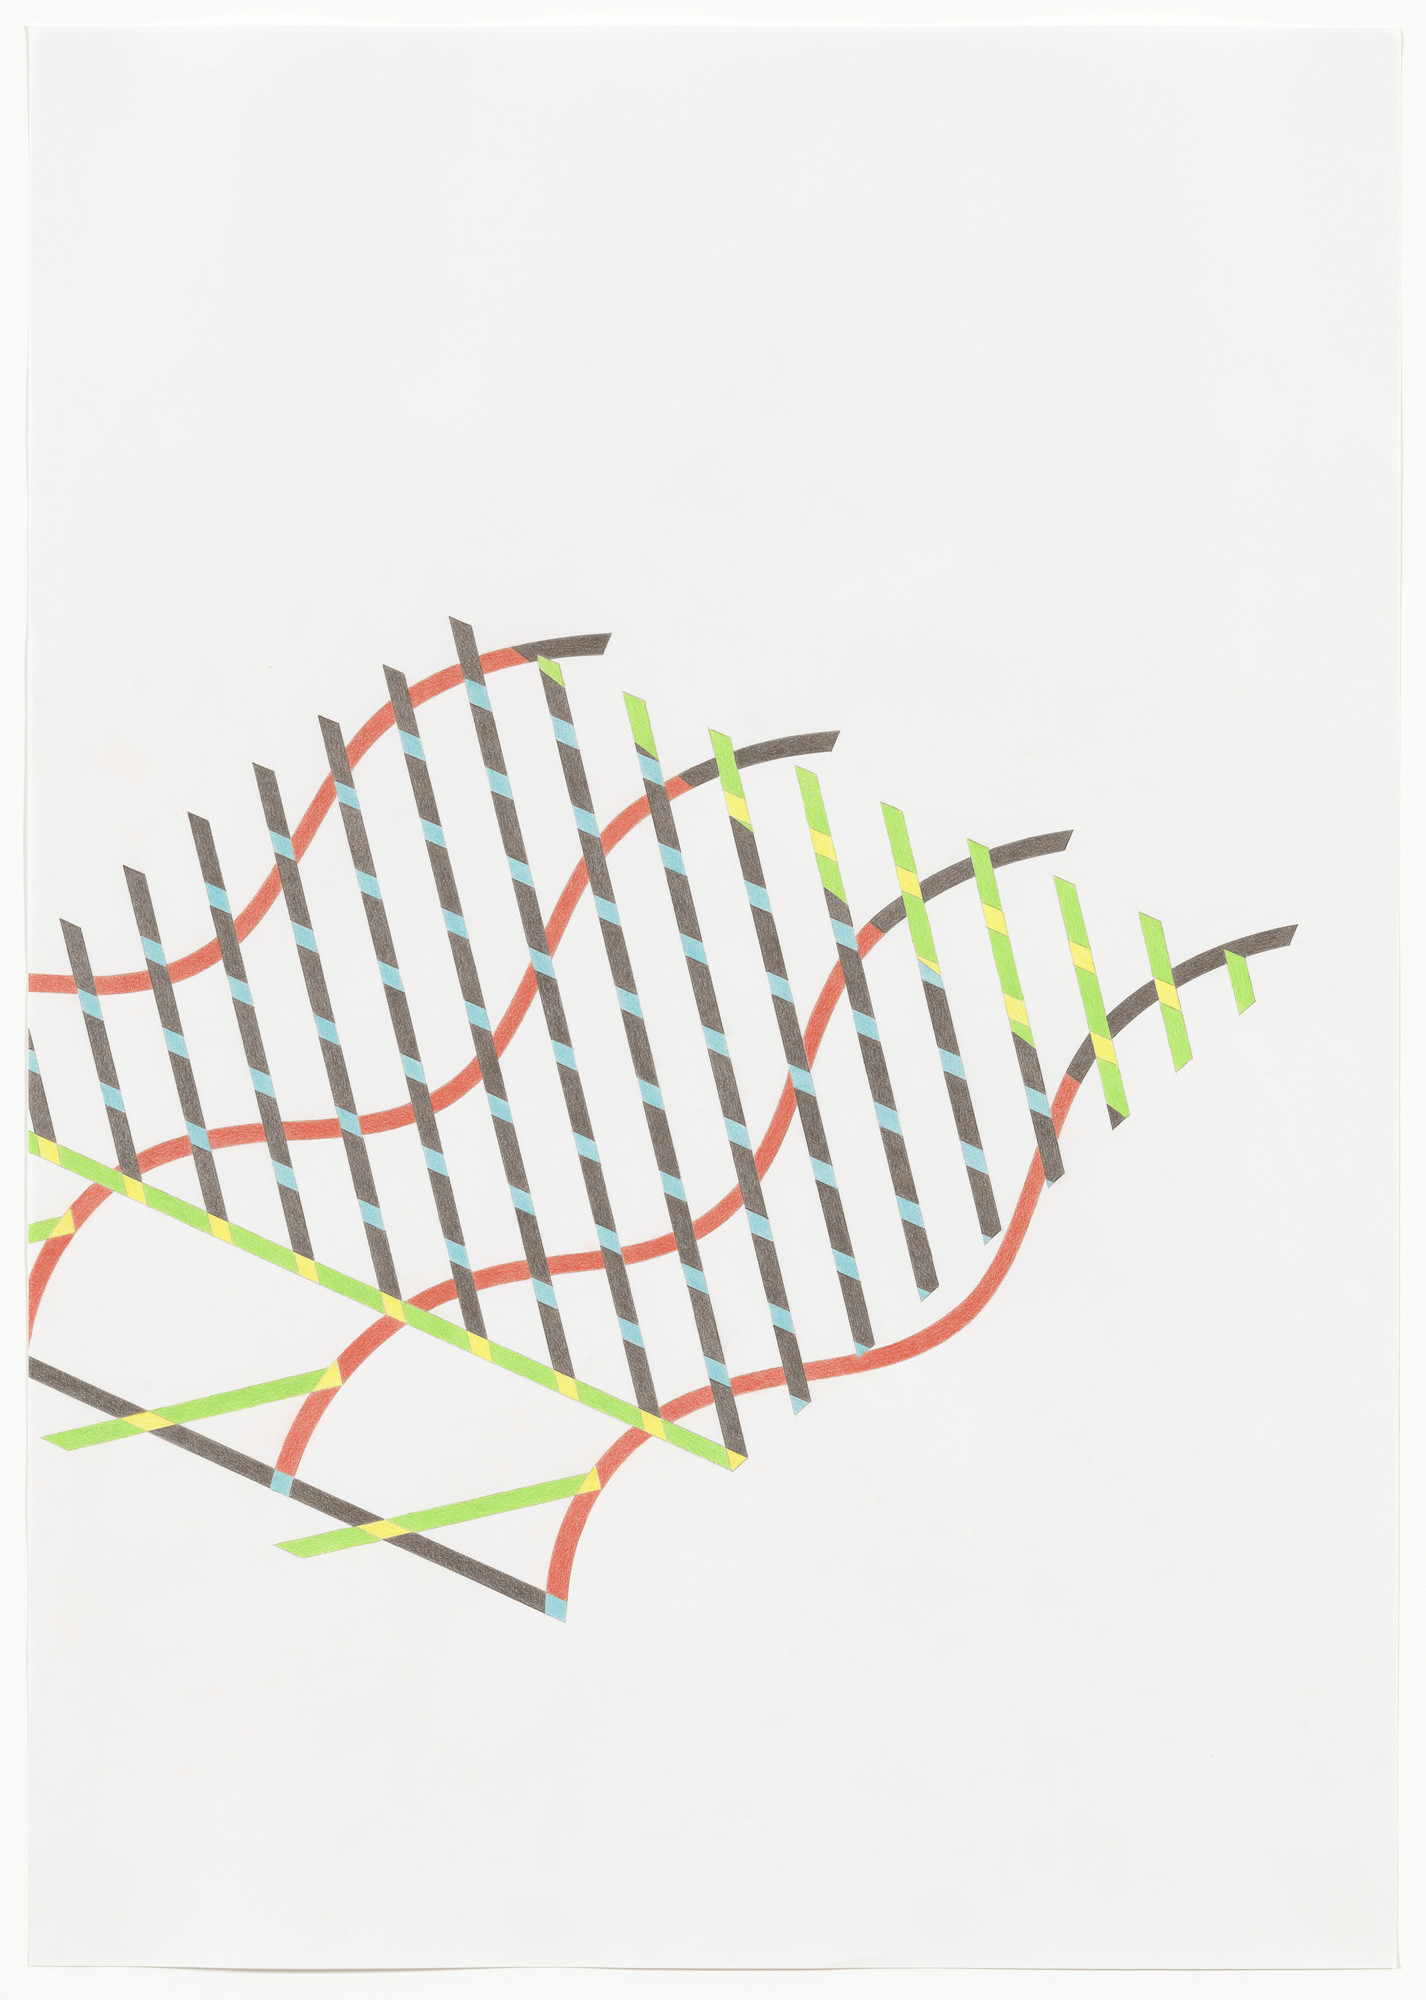 Tomma Abts. Untitled #1B. 2013